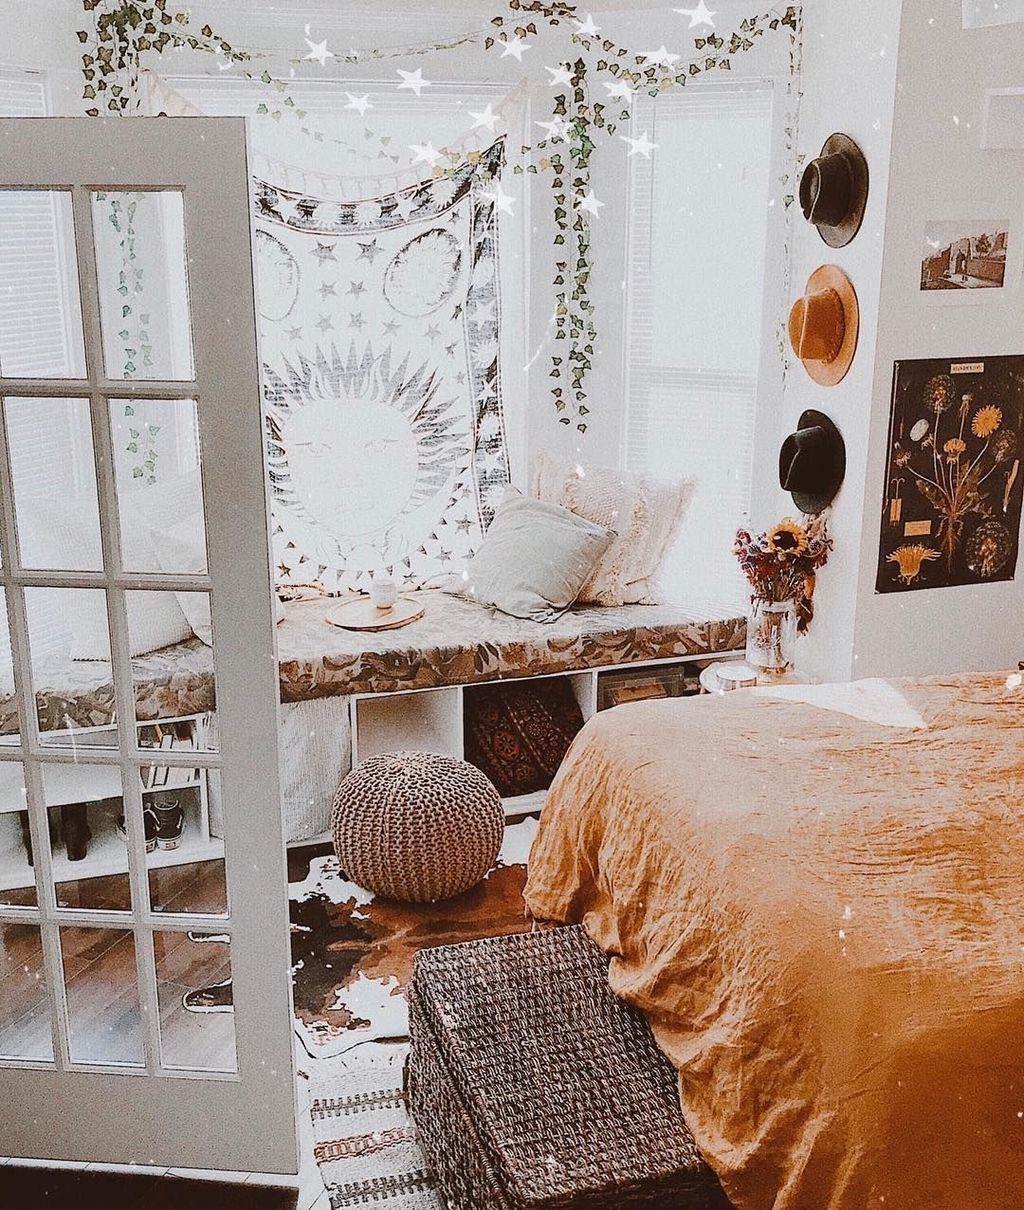 55 Cozy Fall Bedroom Decoration Ideas images